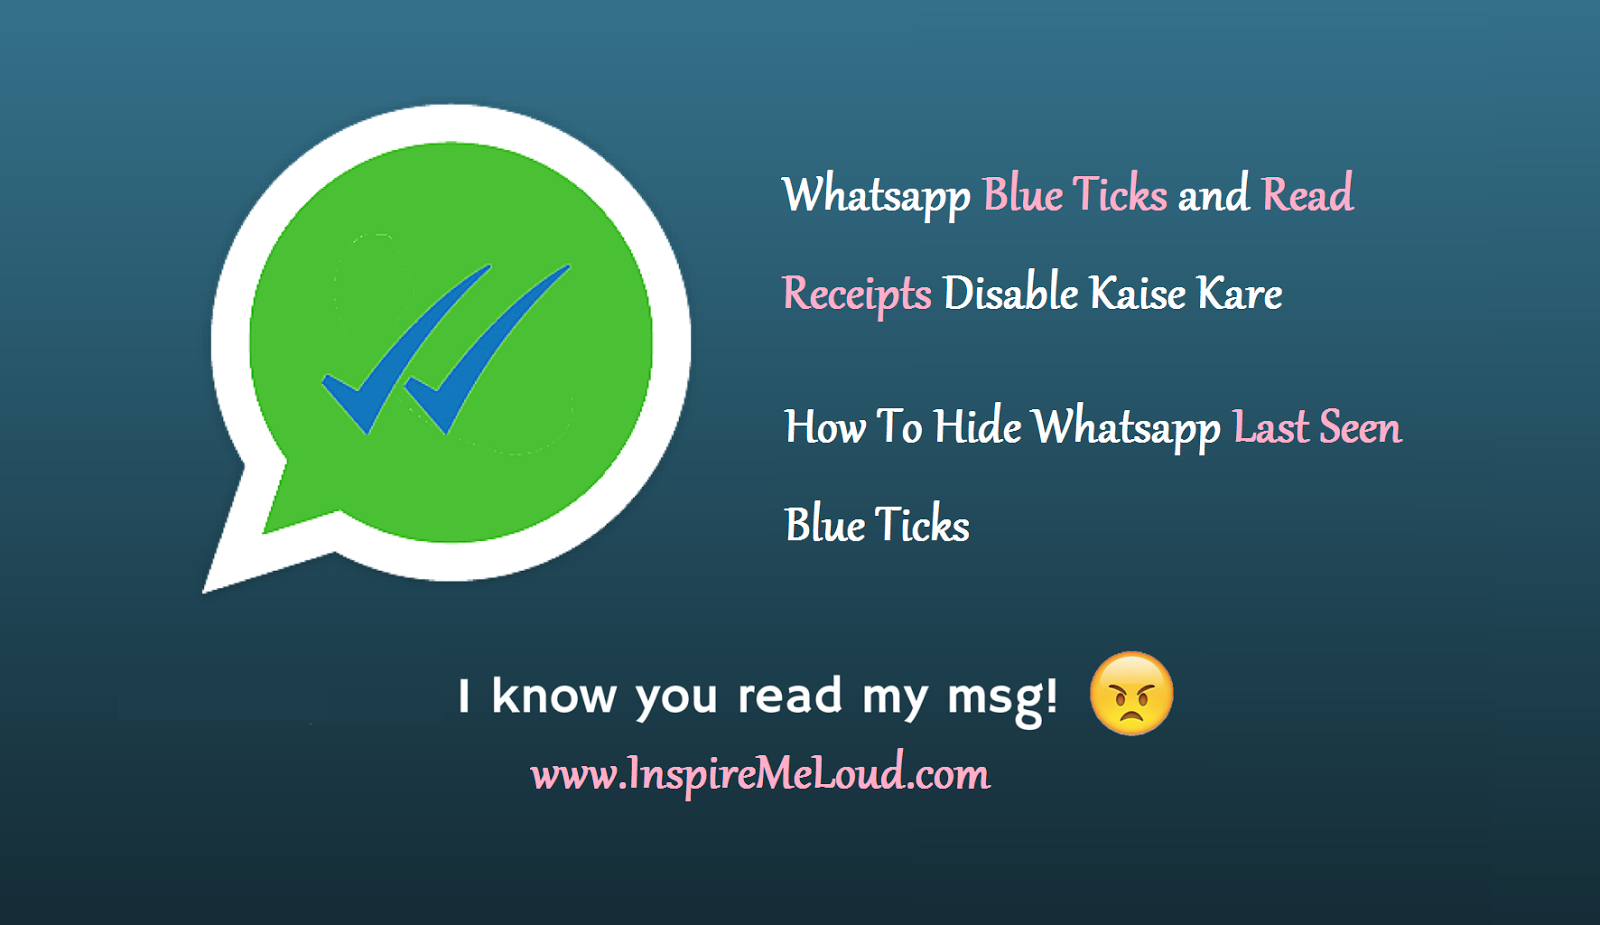 WhatsApp Blue Ticks and Read Receipts Disable kaise kare